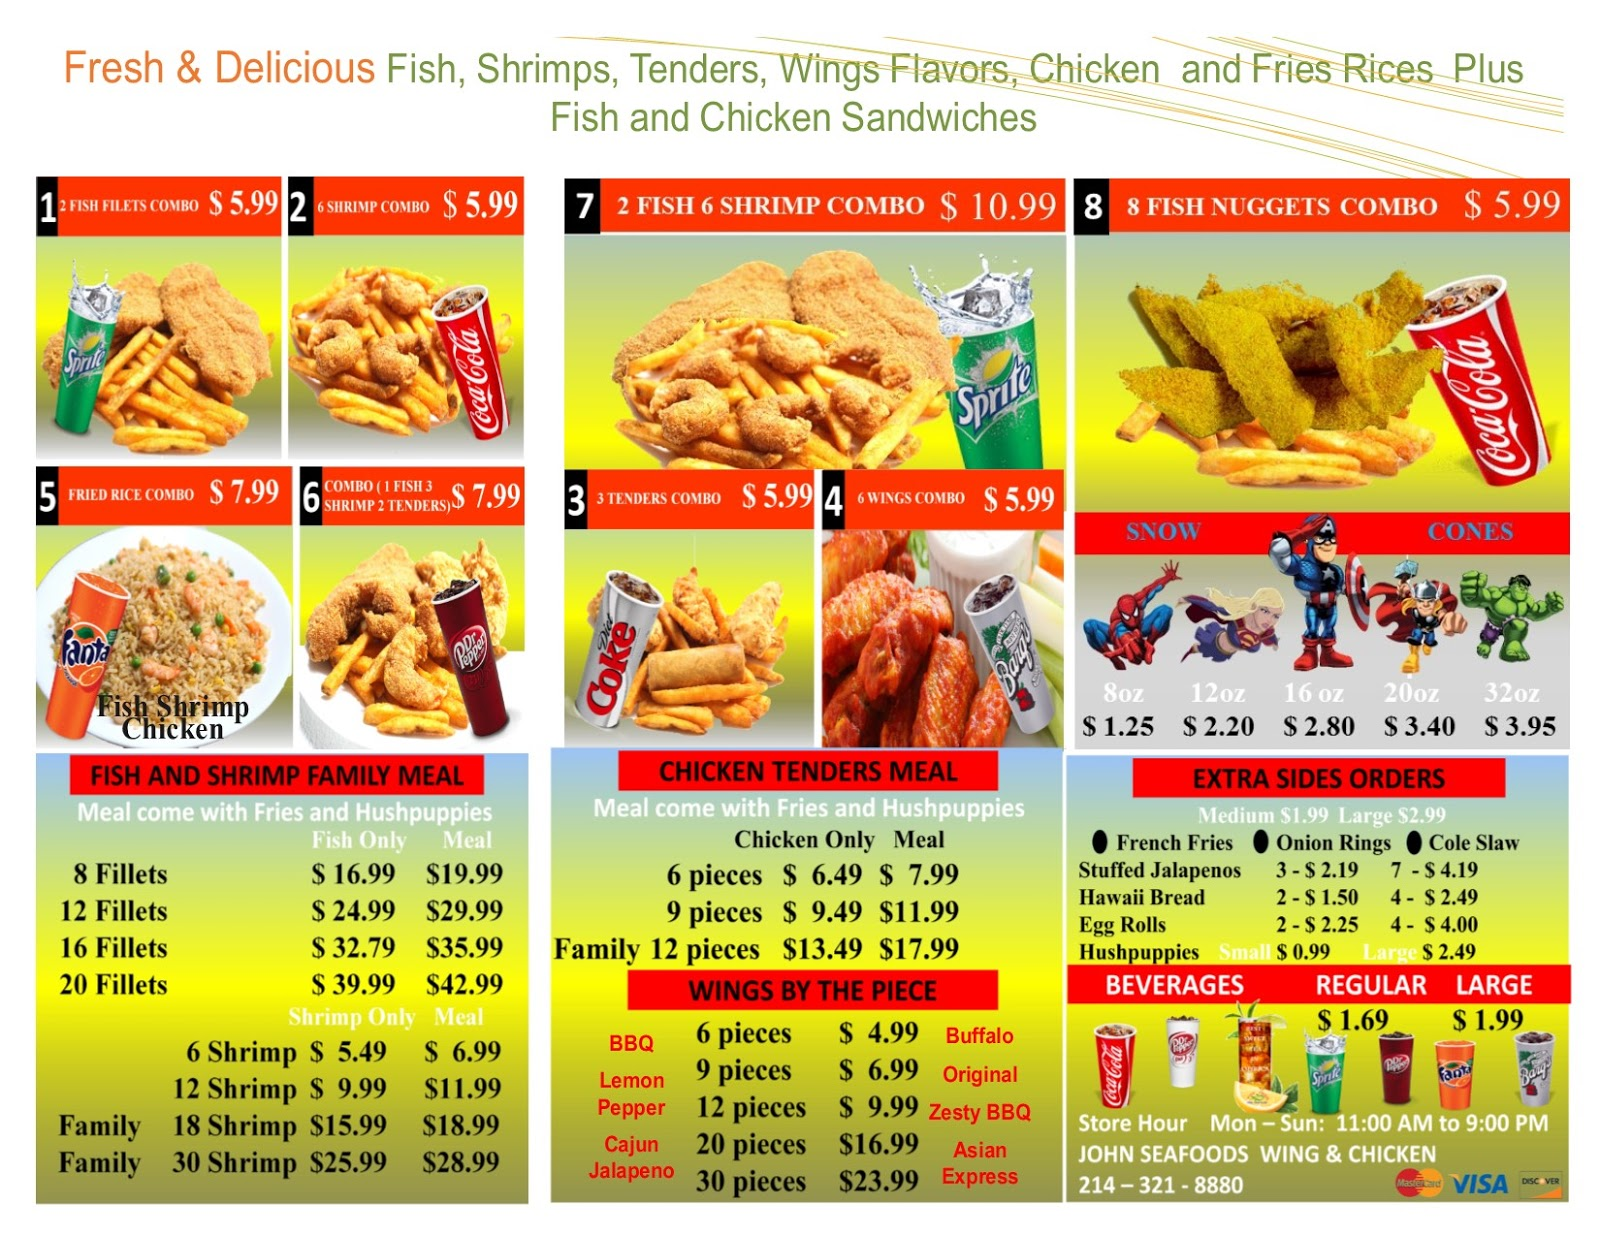 Take out Menu Welcome to John Seafood Wing and Chicken | John ...